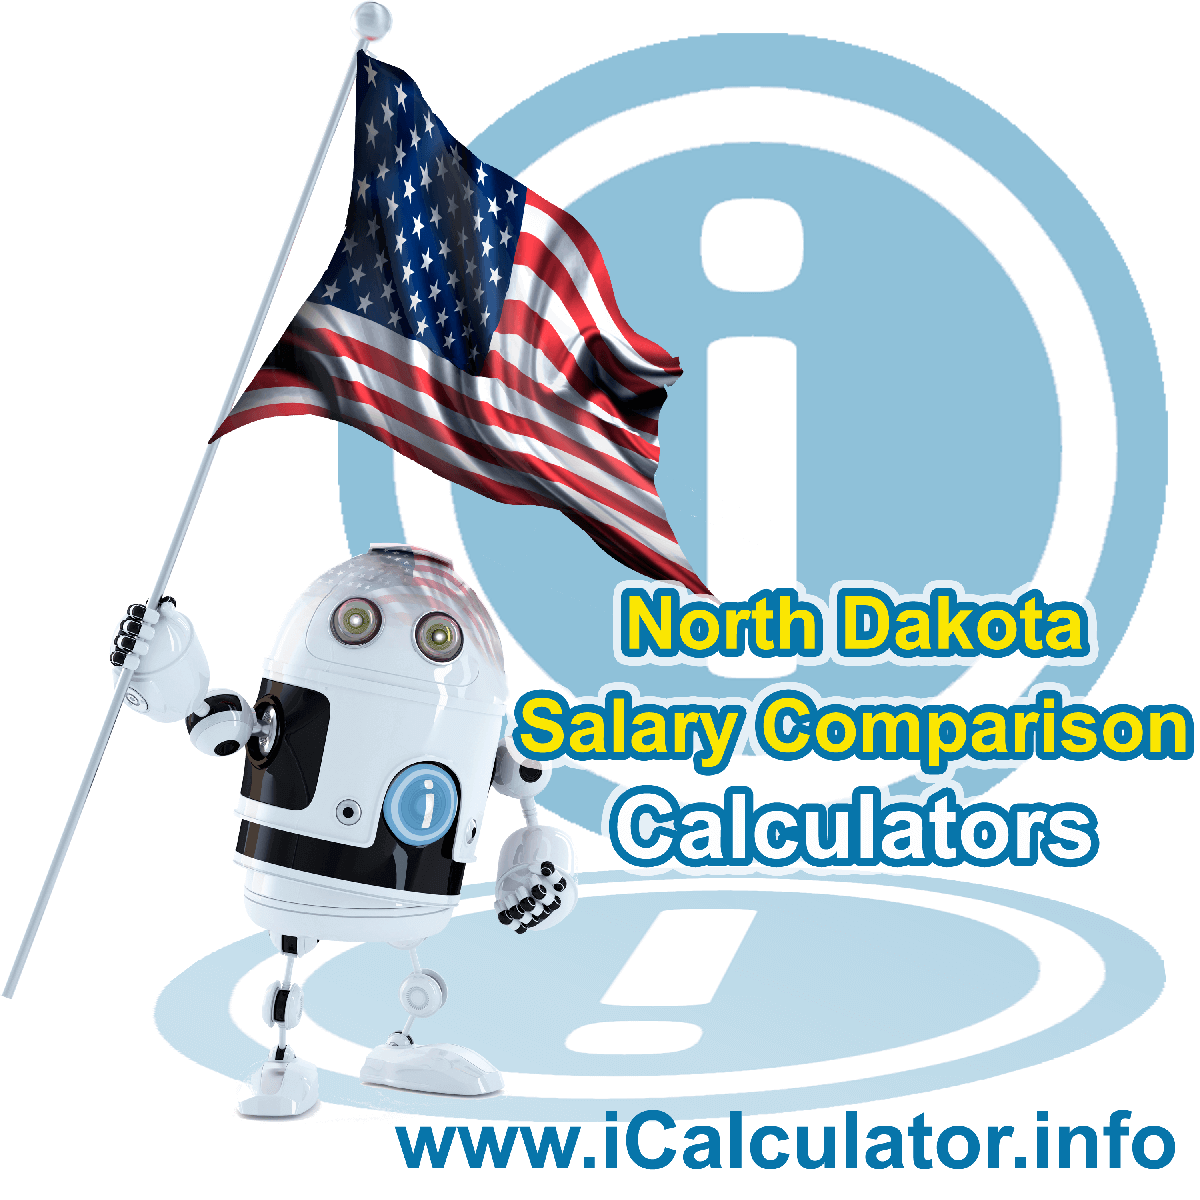 North Dakota Salary Comparison Calculator 2019 | iCalculator | The North Dakota Salary Comparison Calculator allows you to quickly calculate and compare upto 6 salaries in North Dakota or between other states for the 2019 tax year and historical tax years. Its an excellent tool for jobseekers, pay raise comparison and comparison of salaries between different US States